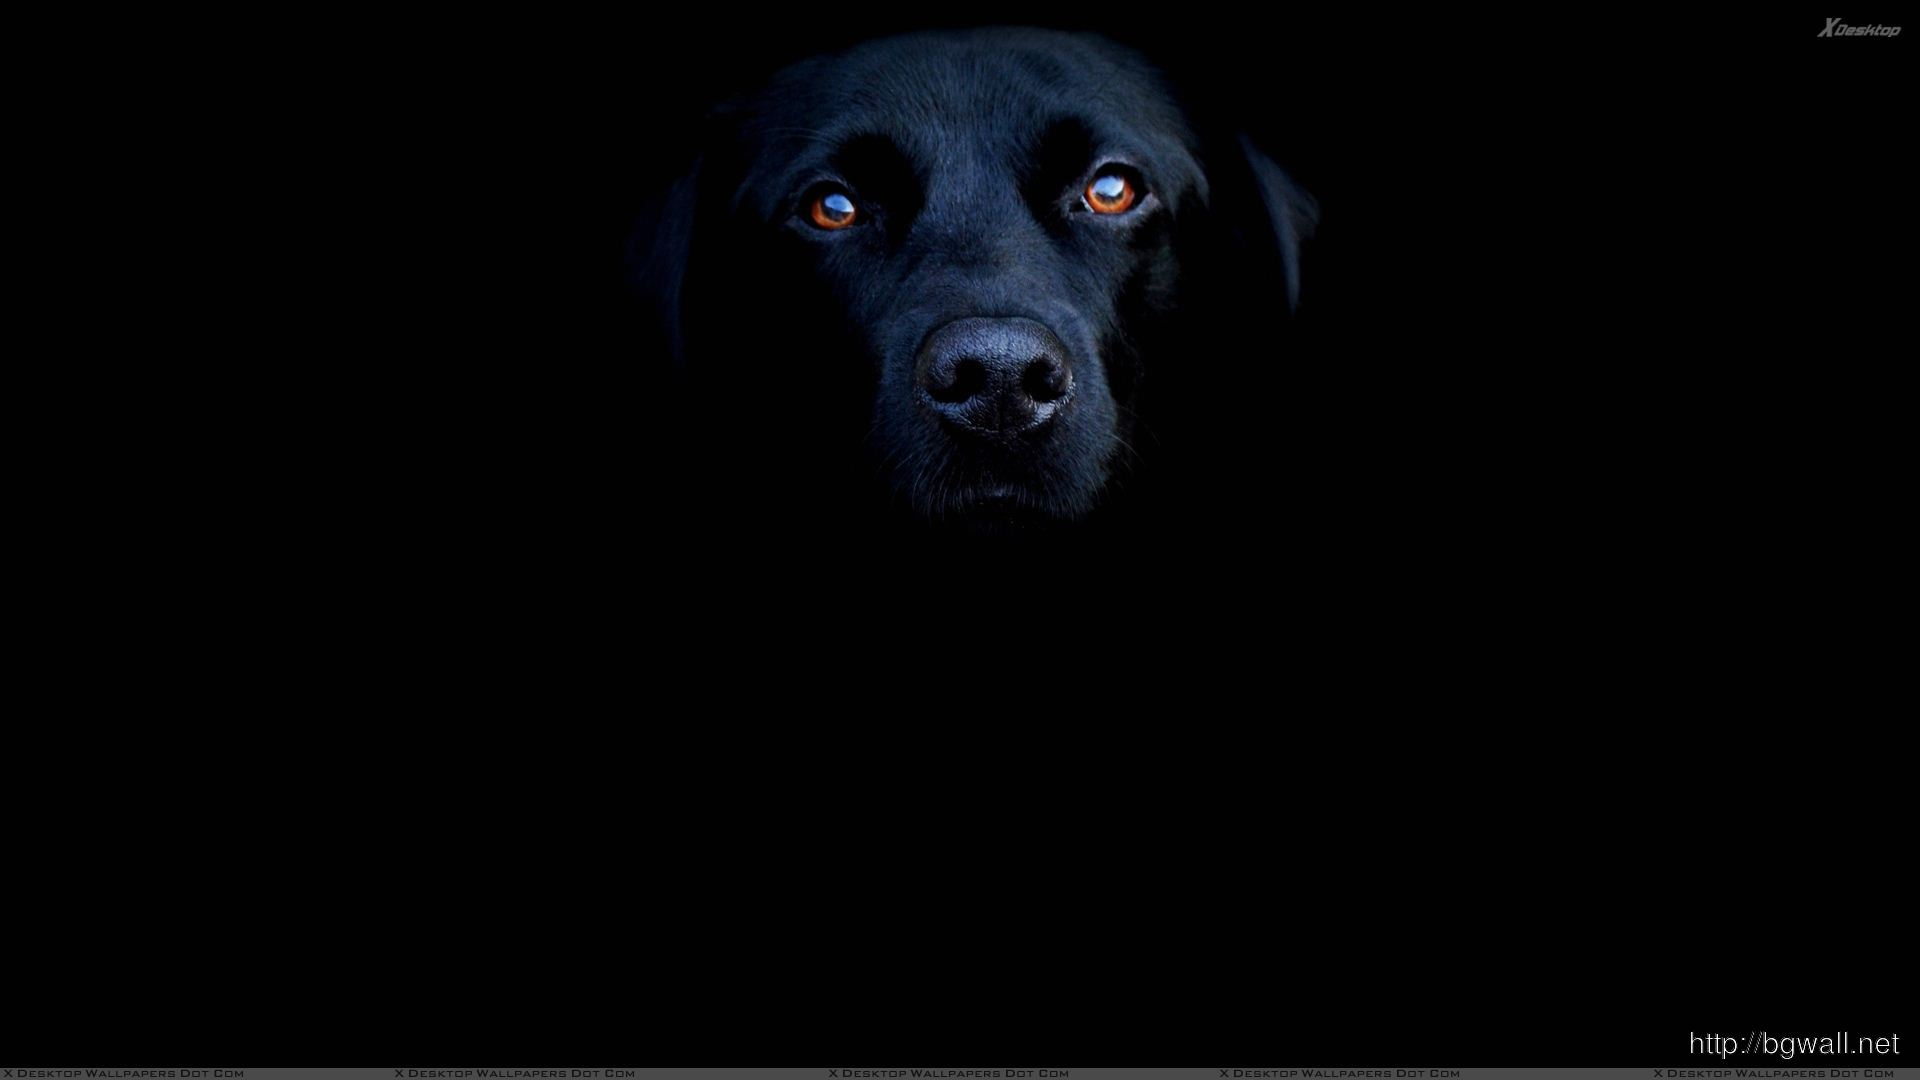 Black Labrador Face Closeup On Black Background Wallpaper Full Size